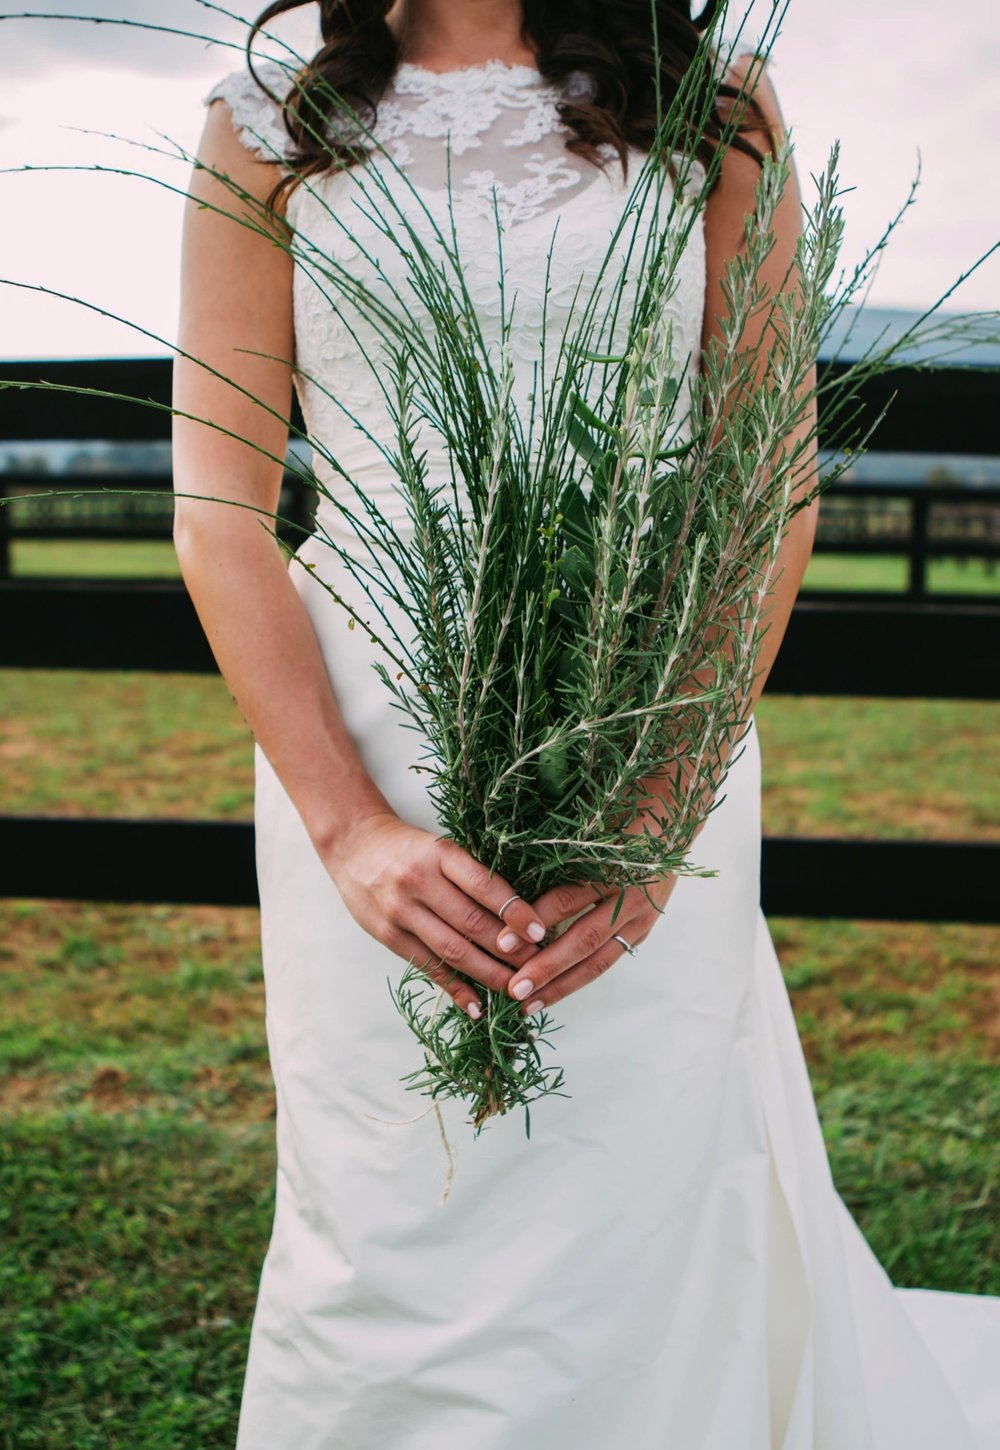 00007_arielandjon_odetooctober_025_gv_ridge_Wedding_blue_mismatched_dresses_october_flowers_parkway_mountains_crozet_king_photography_gianvaldiviaphoto_valdivia_bride_faded_family_gian_fall_virginia_bridesmaid_photographer_vineyard_poppy_florals.jpg